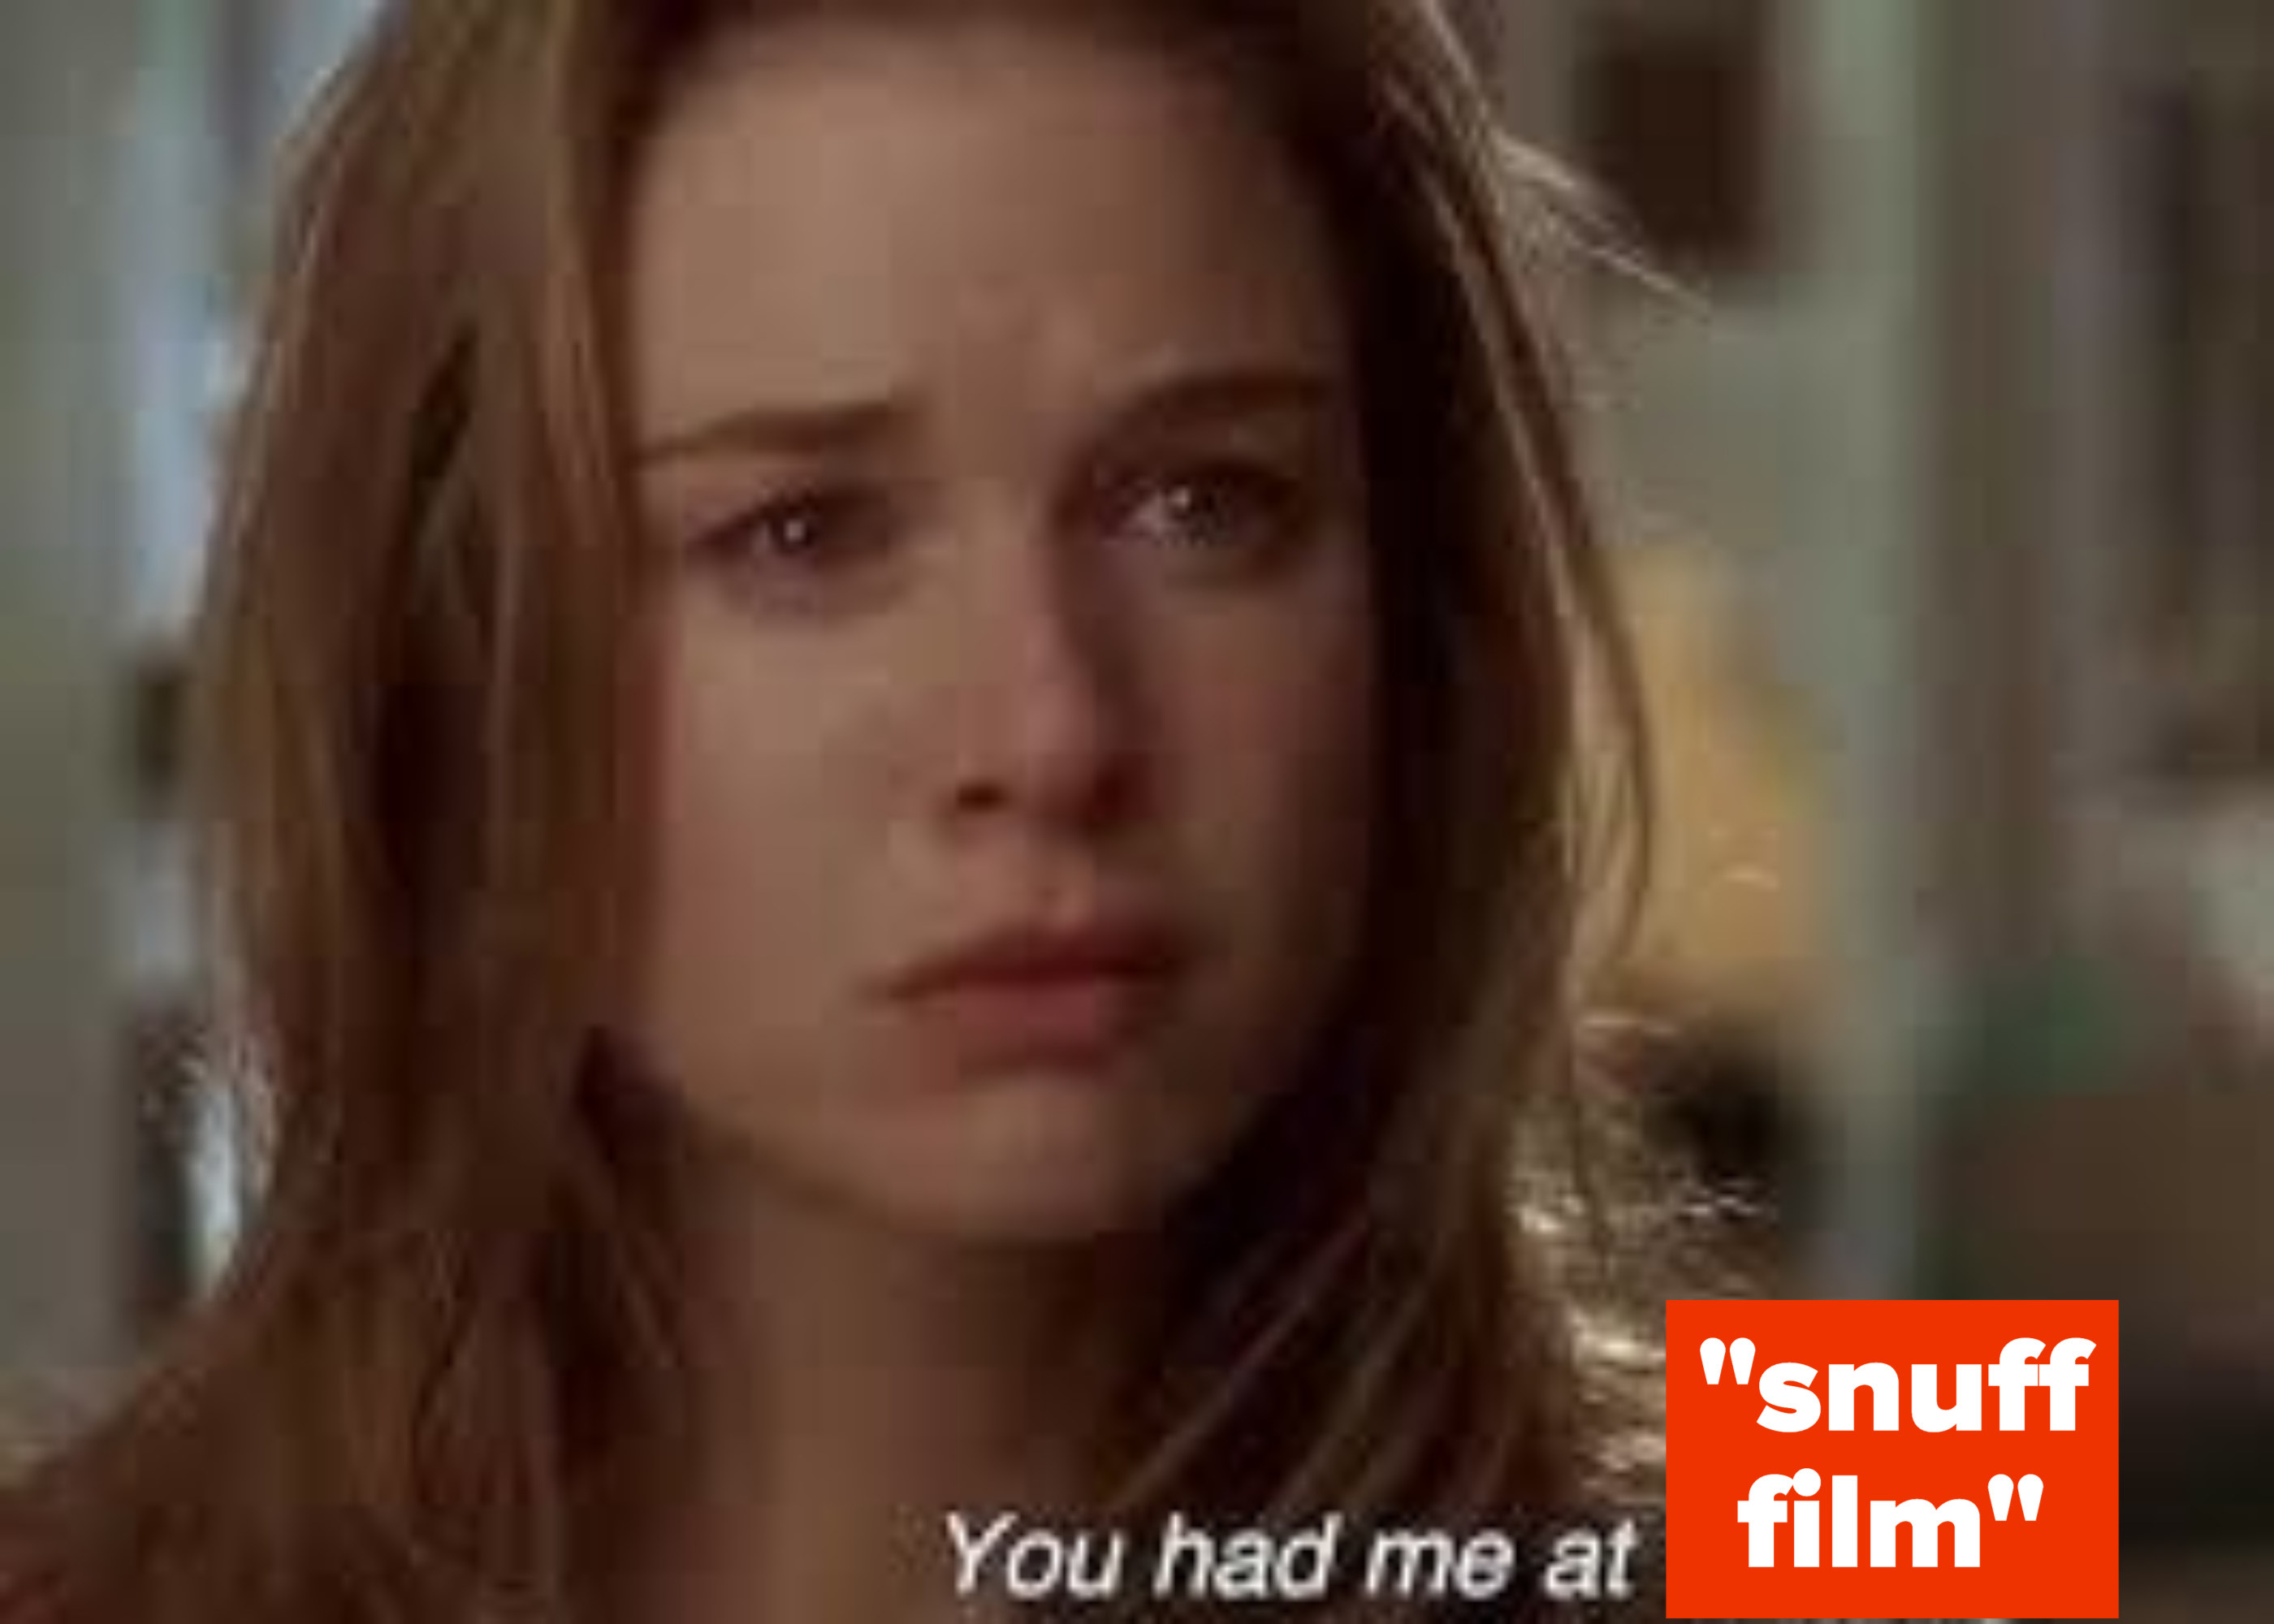 Renee Zellweger in Jerry Maguire but saying you had me at snuff film